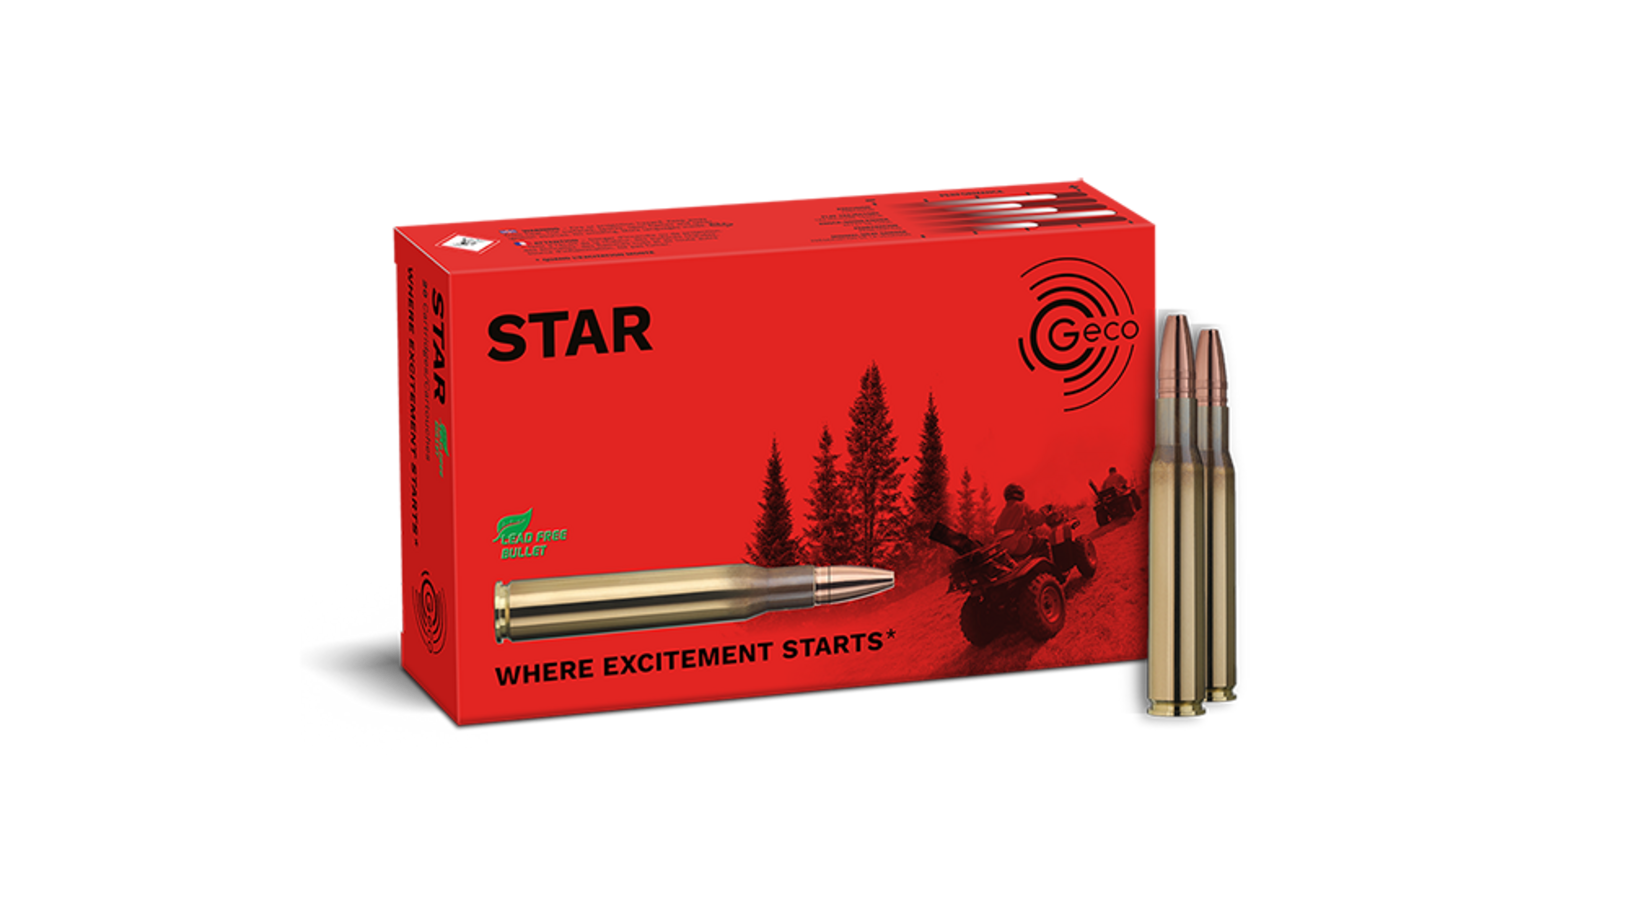 Frontview of ammunition and packaging of GECO .30-06 STAR 10,7g